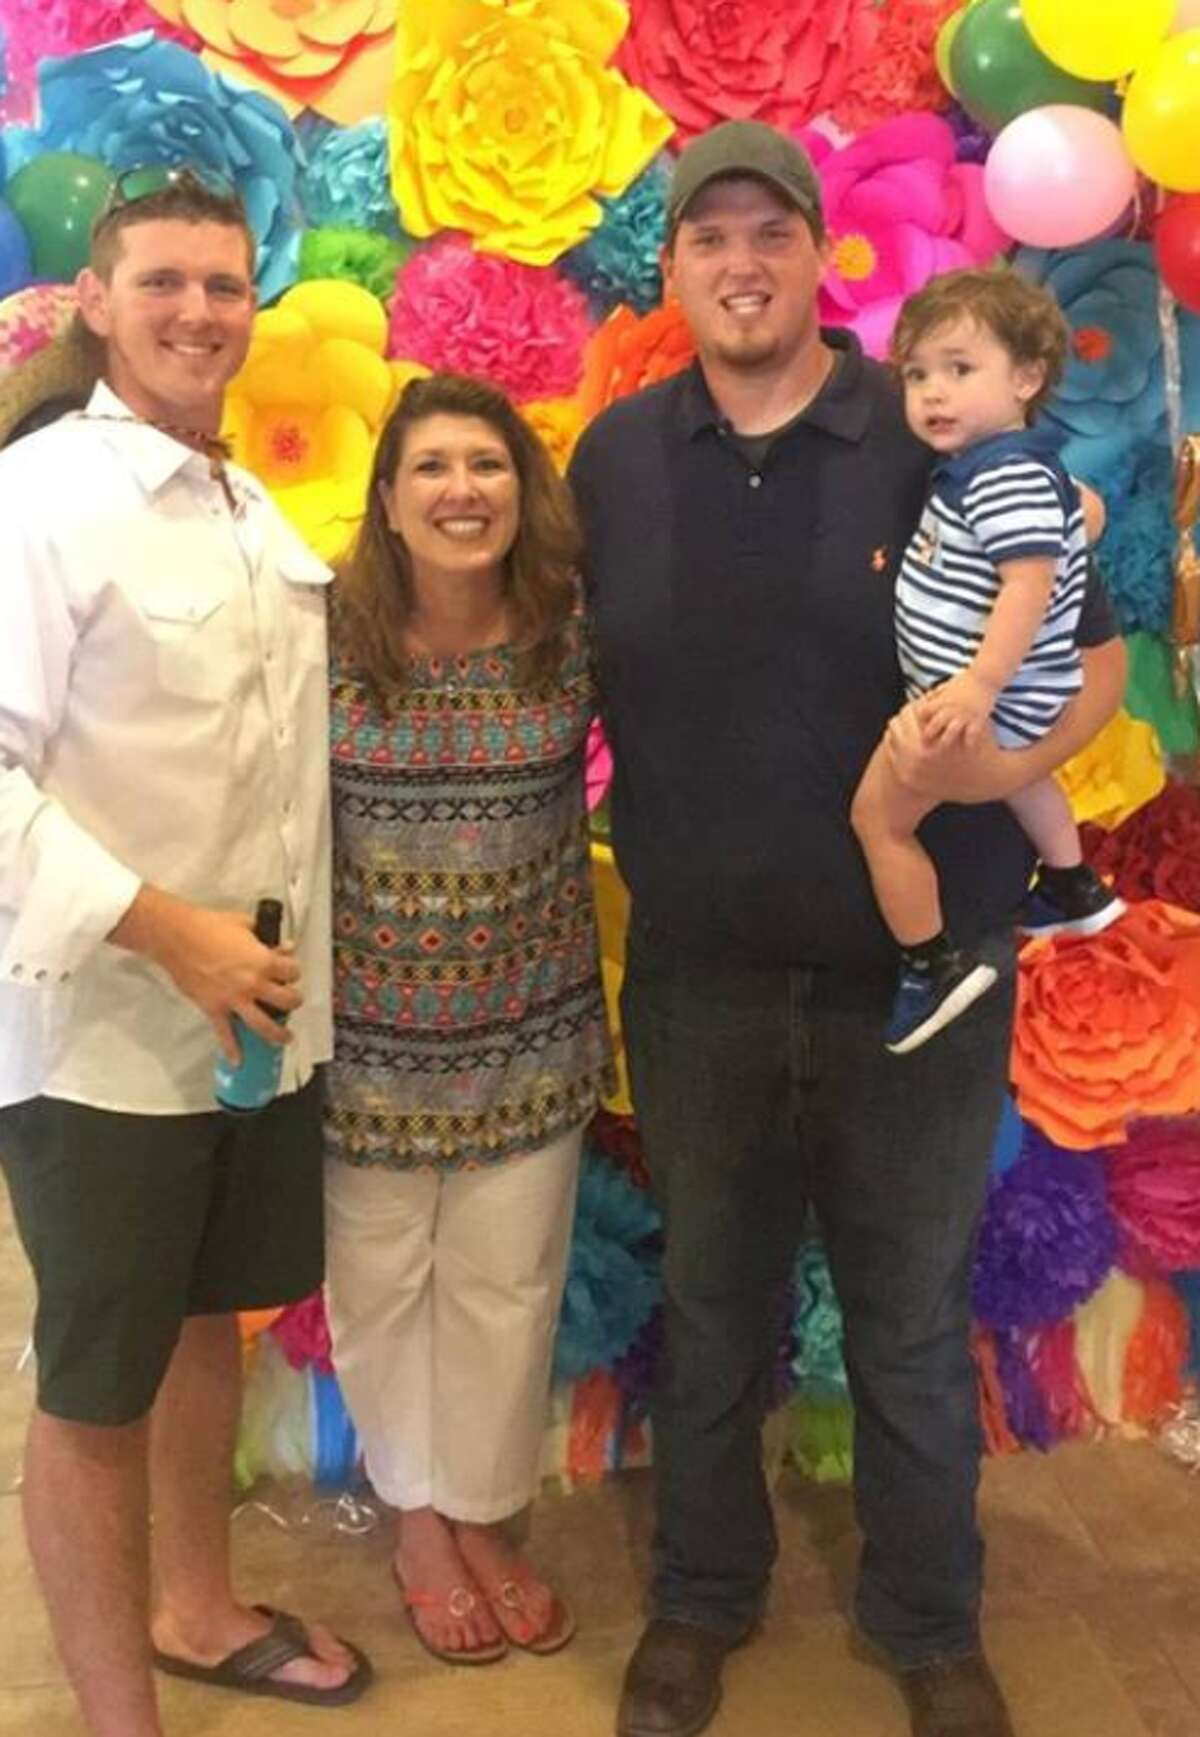 Keri Guillory, seen here with her two sons and her grandson, was struck and killed in Waller County March 25 while biking on a MS150 training ride.